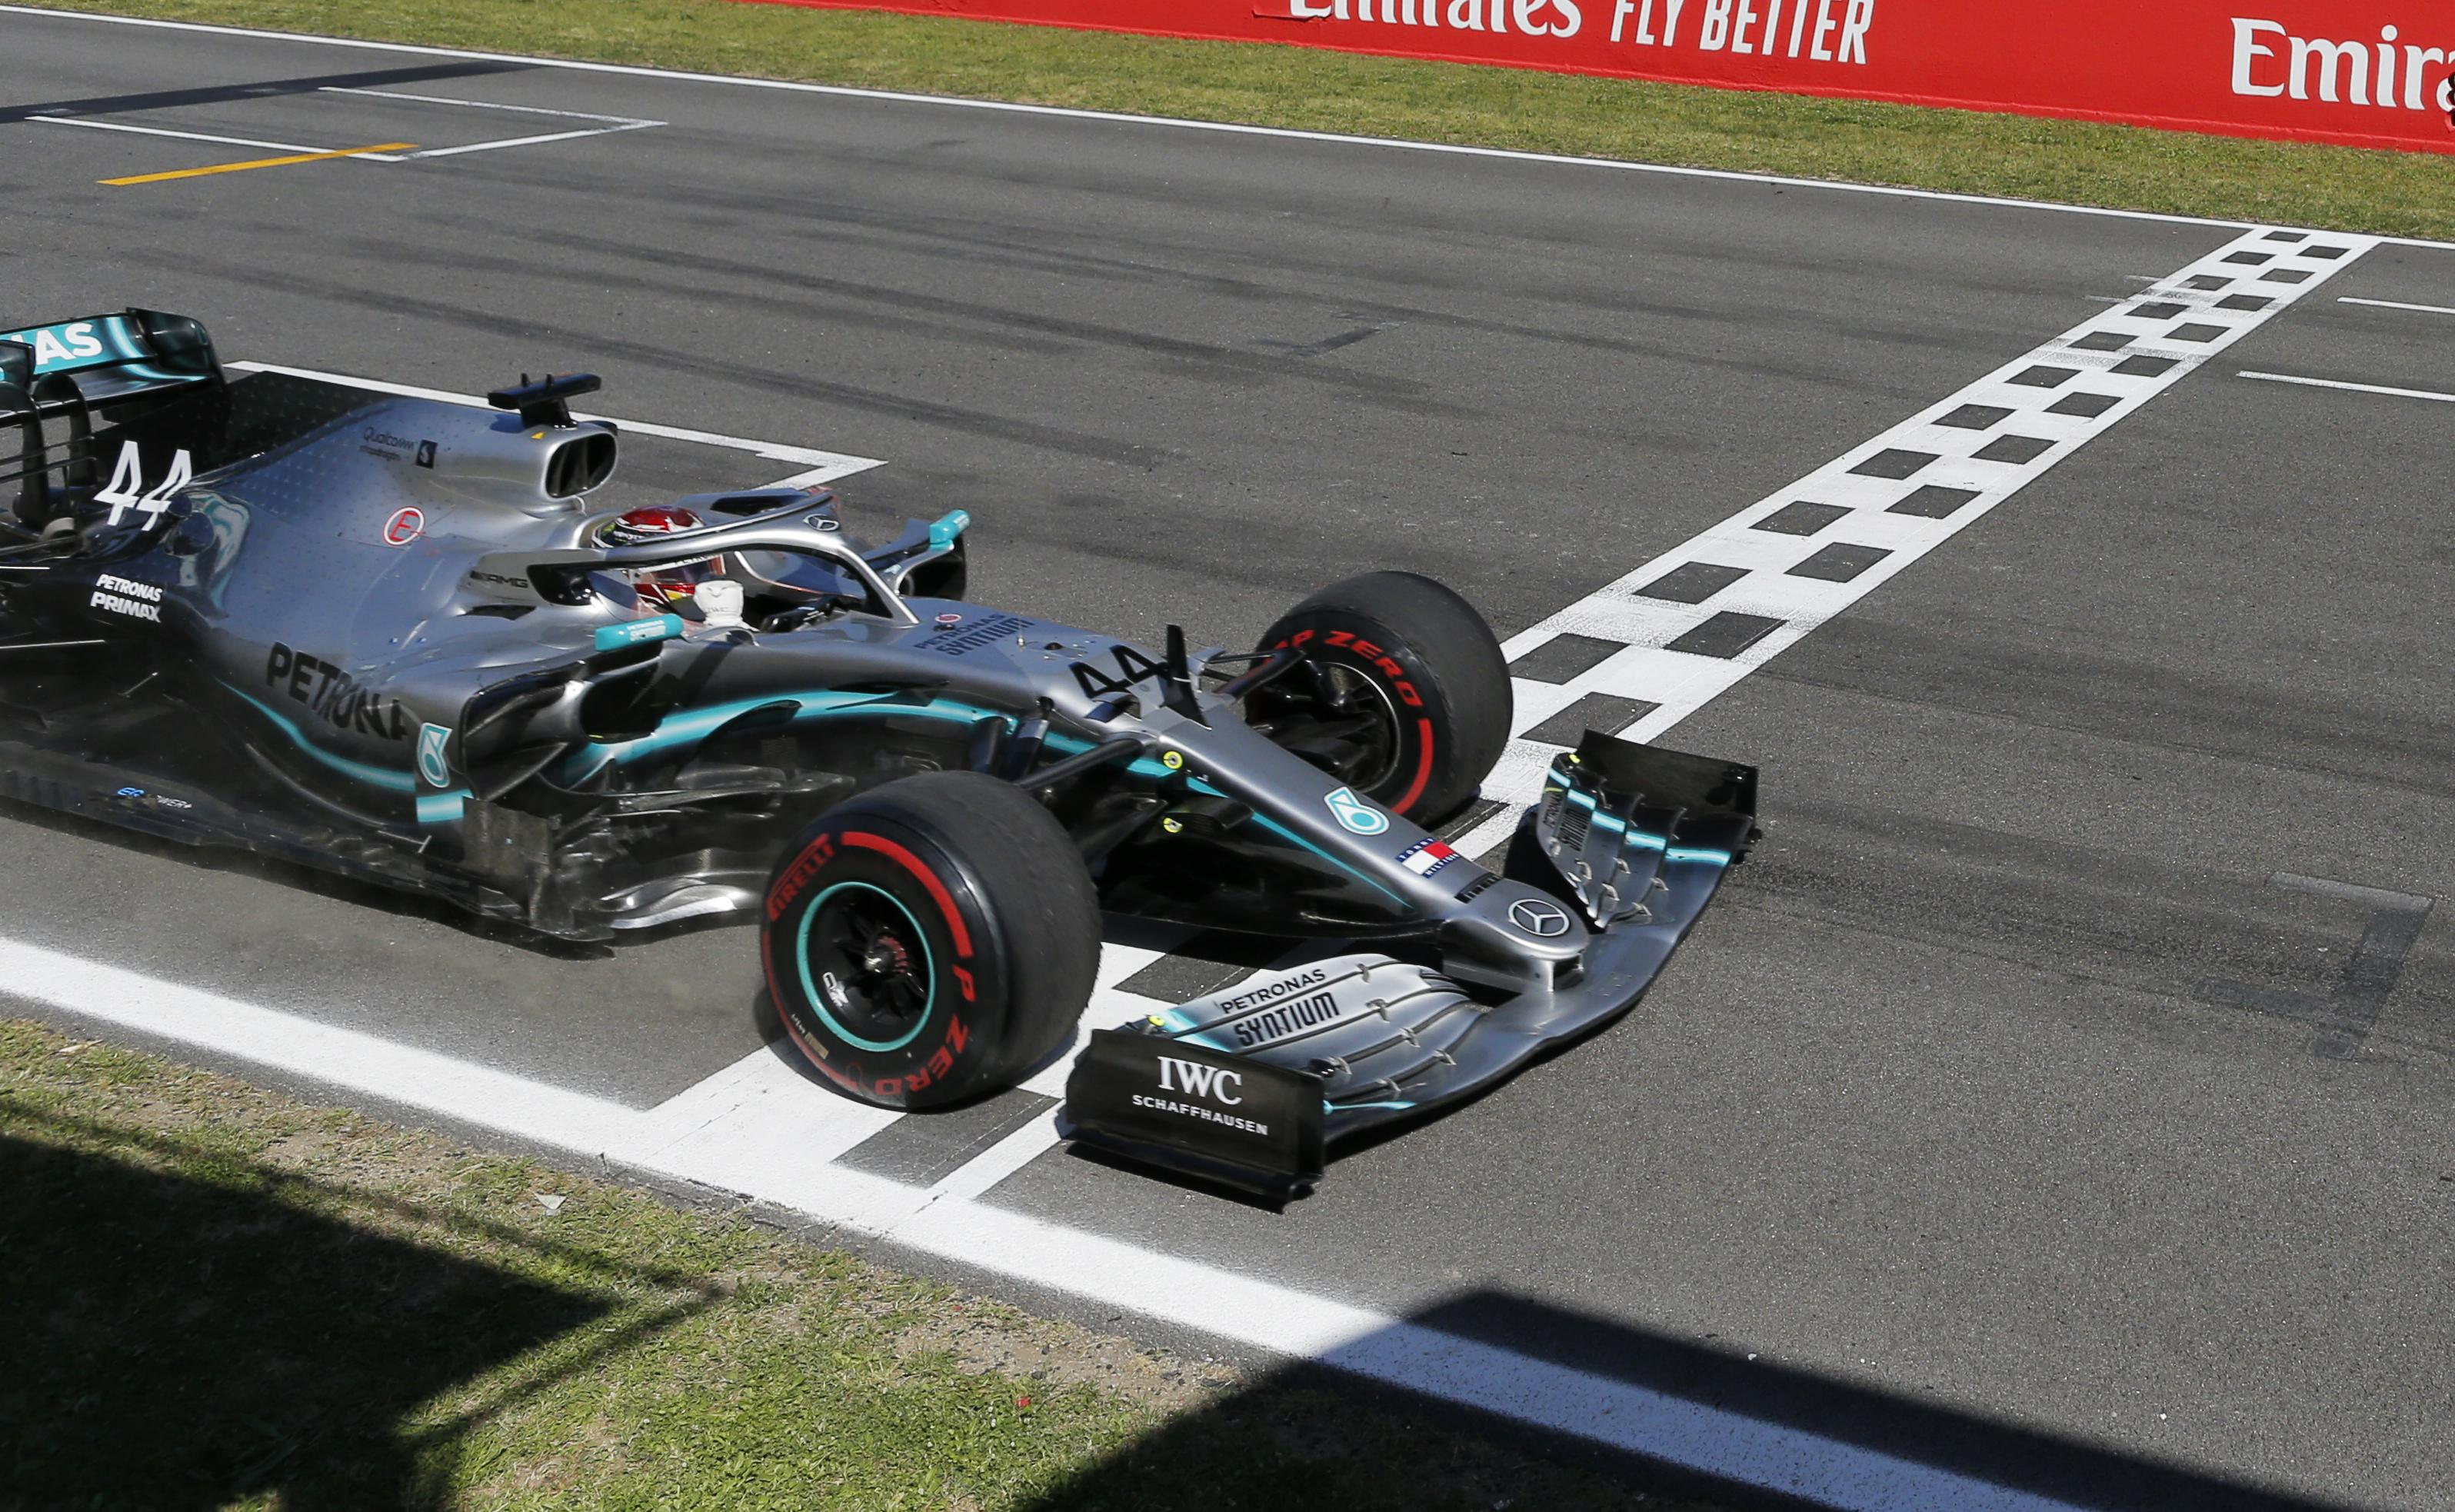 Spanish Grand Prix to stay on F1 calendar in 2020